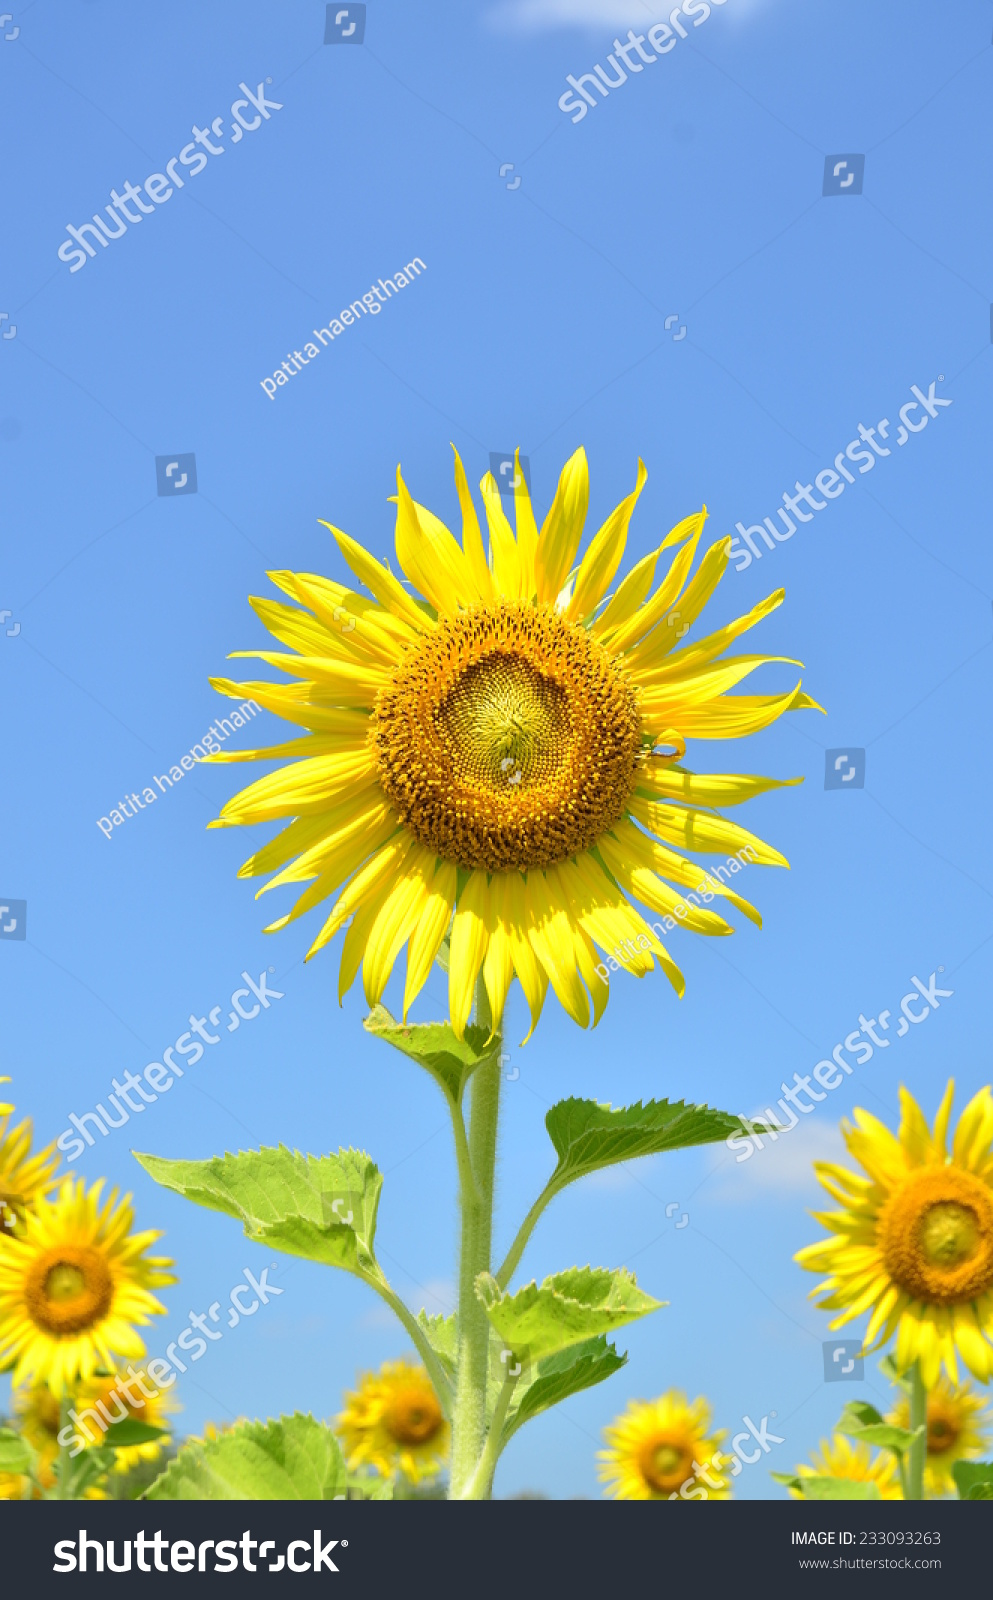 sunflowers flowers yellow green background nature wallpaper | ez canvas